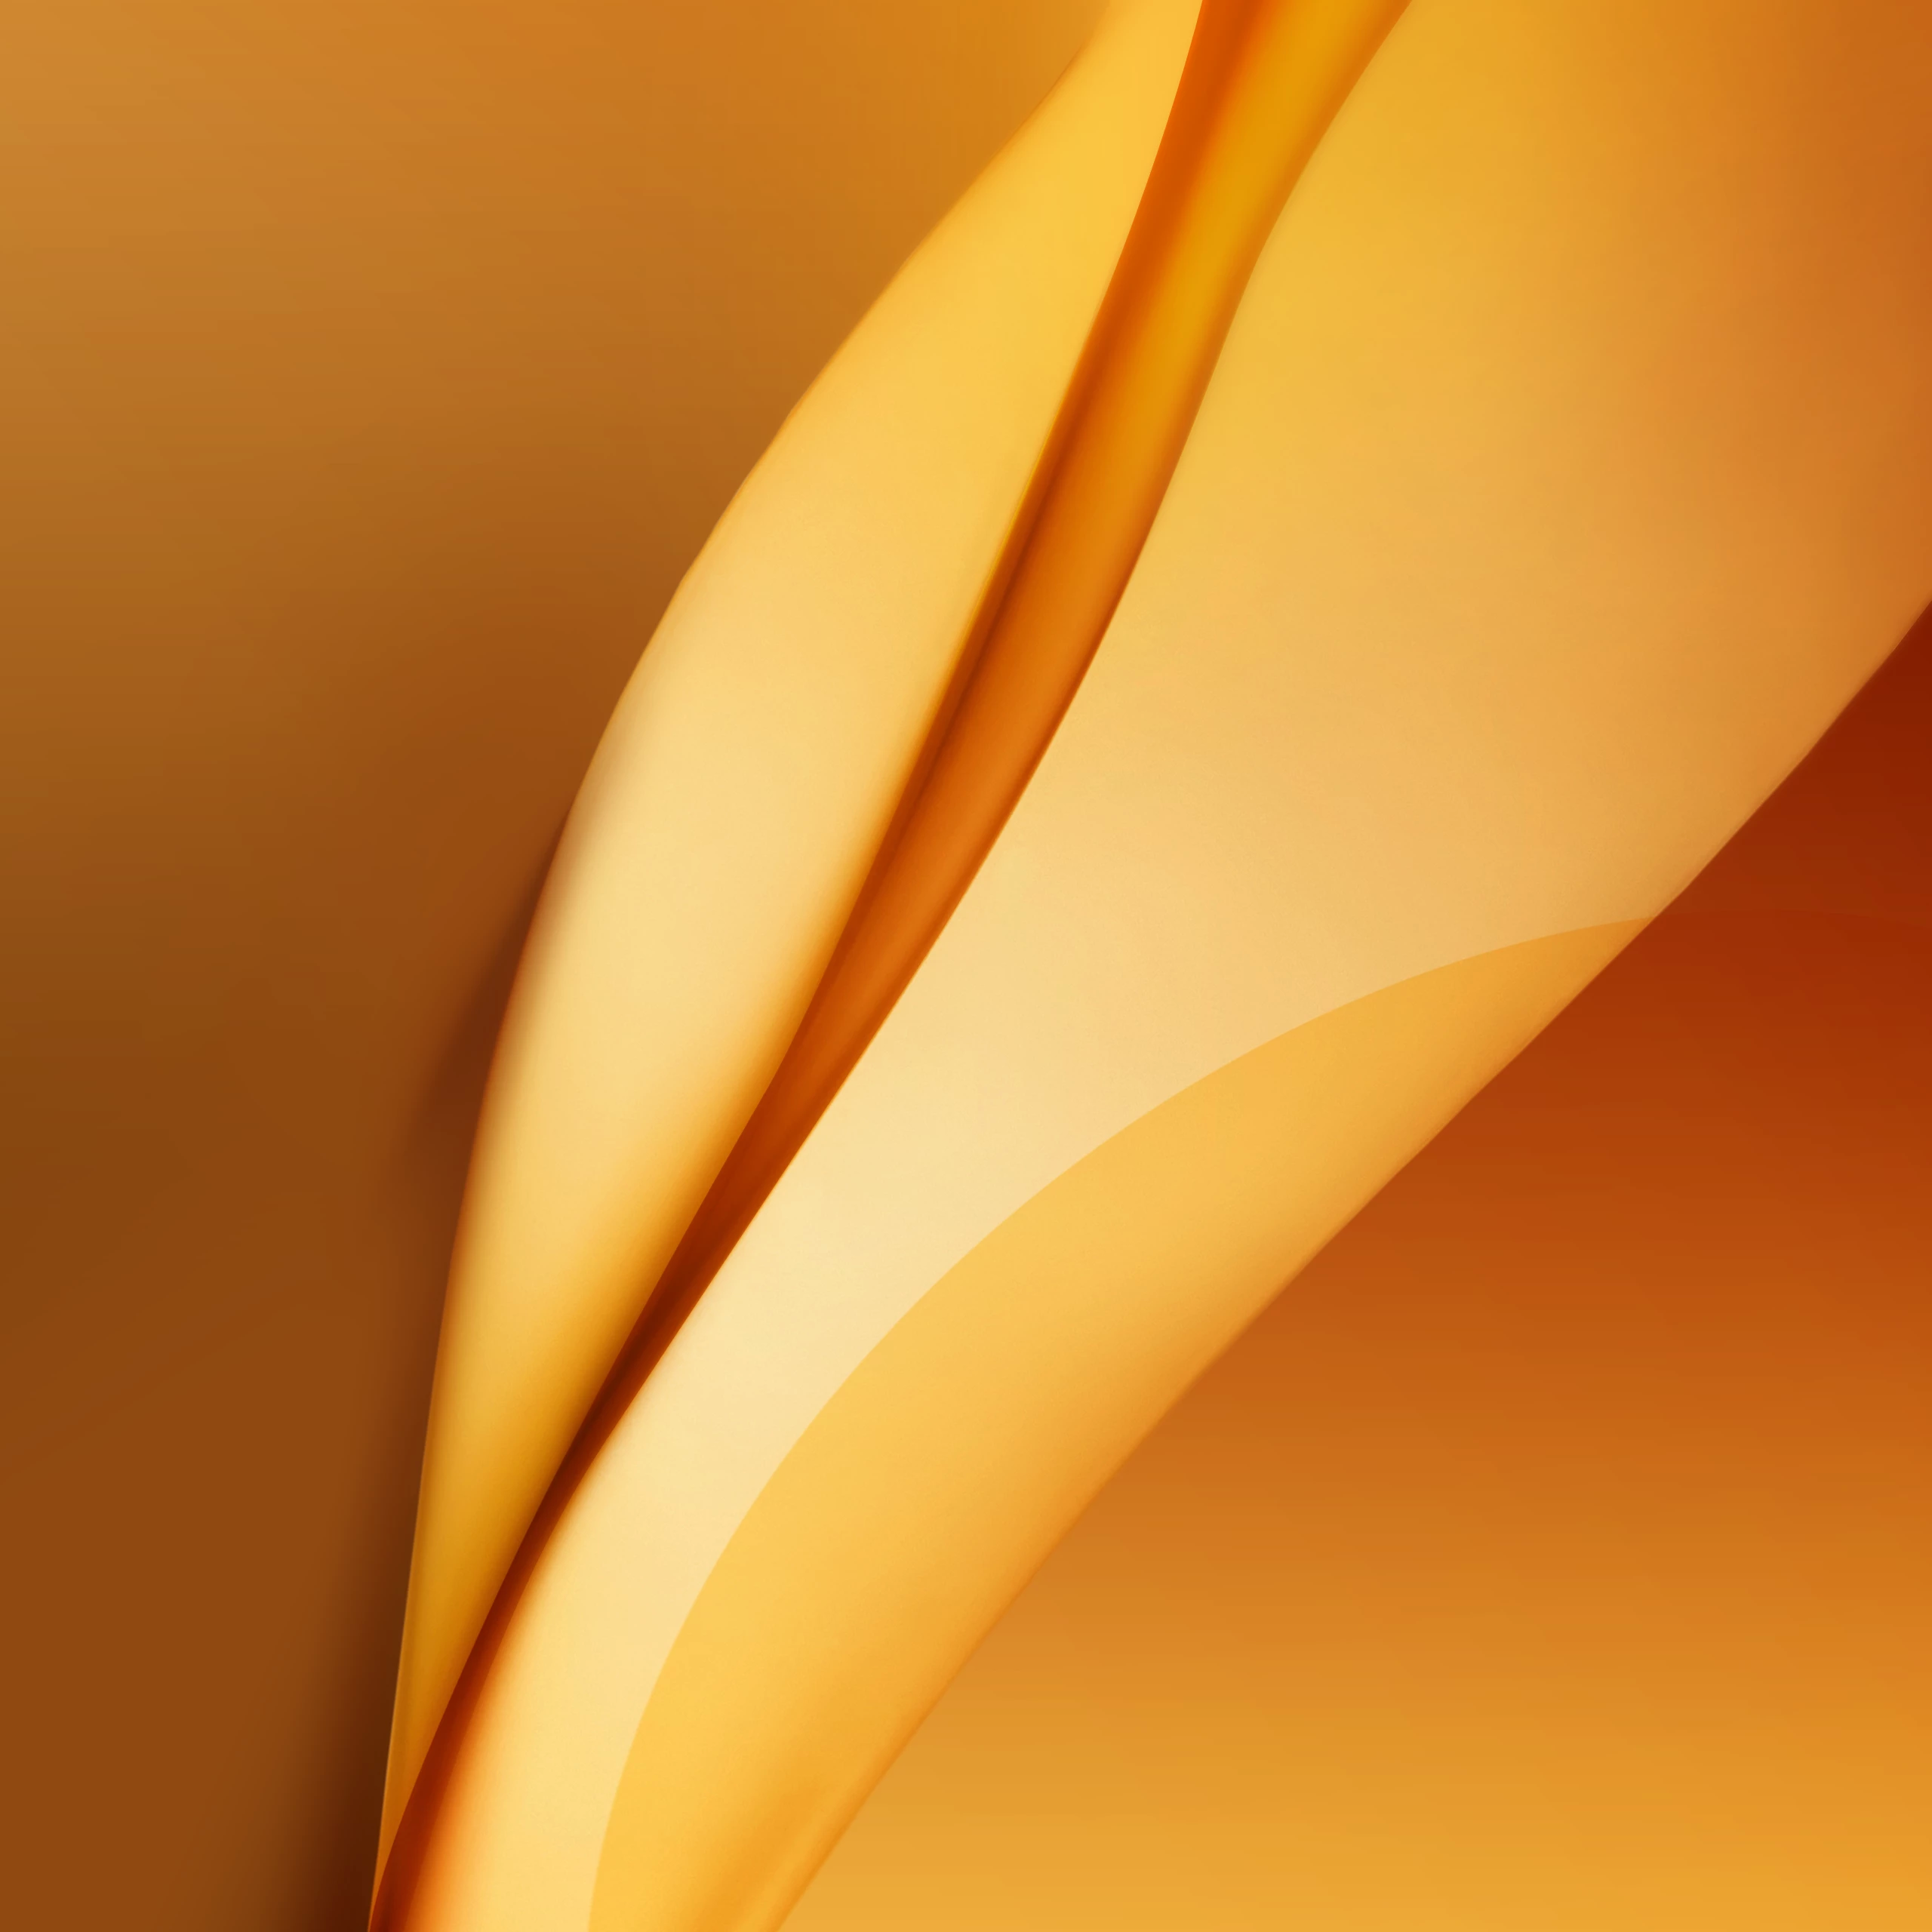 Galaxy-Note-5-Wallpapers-05-1